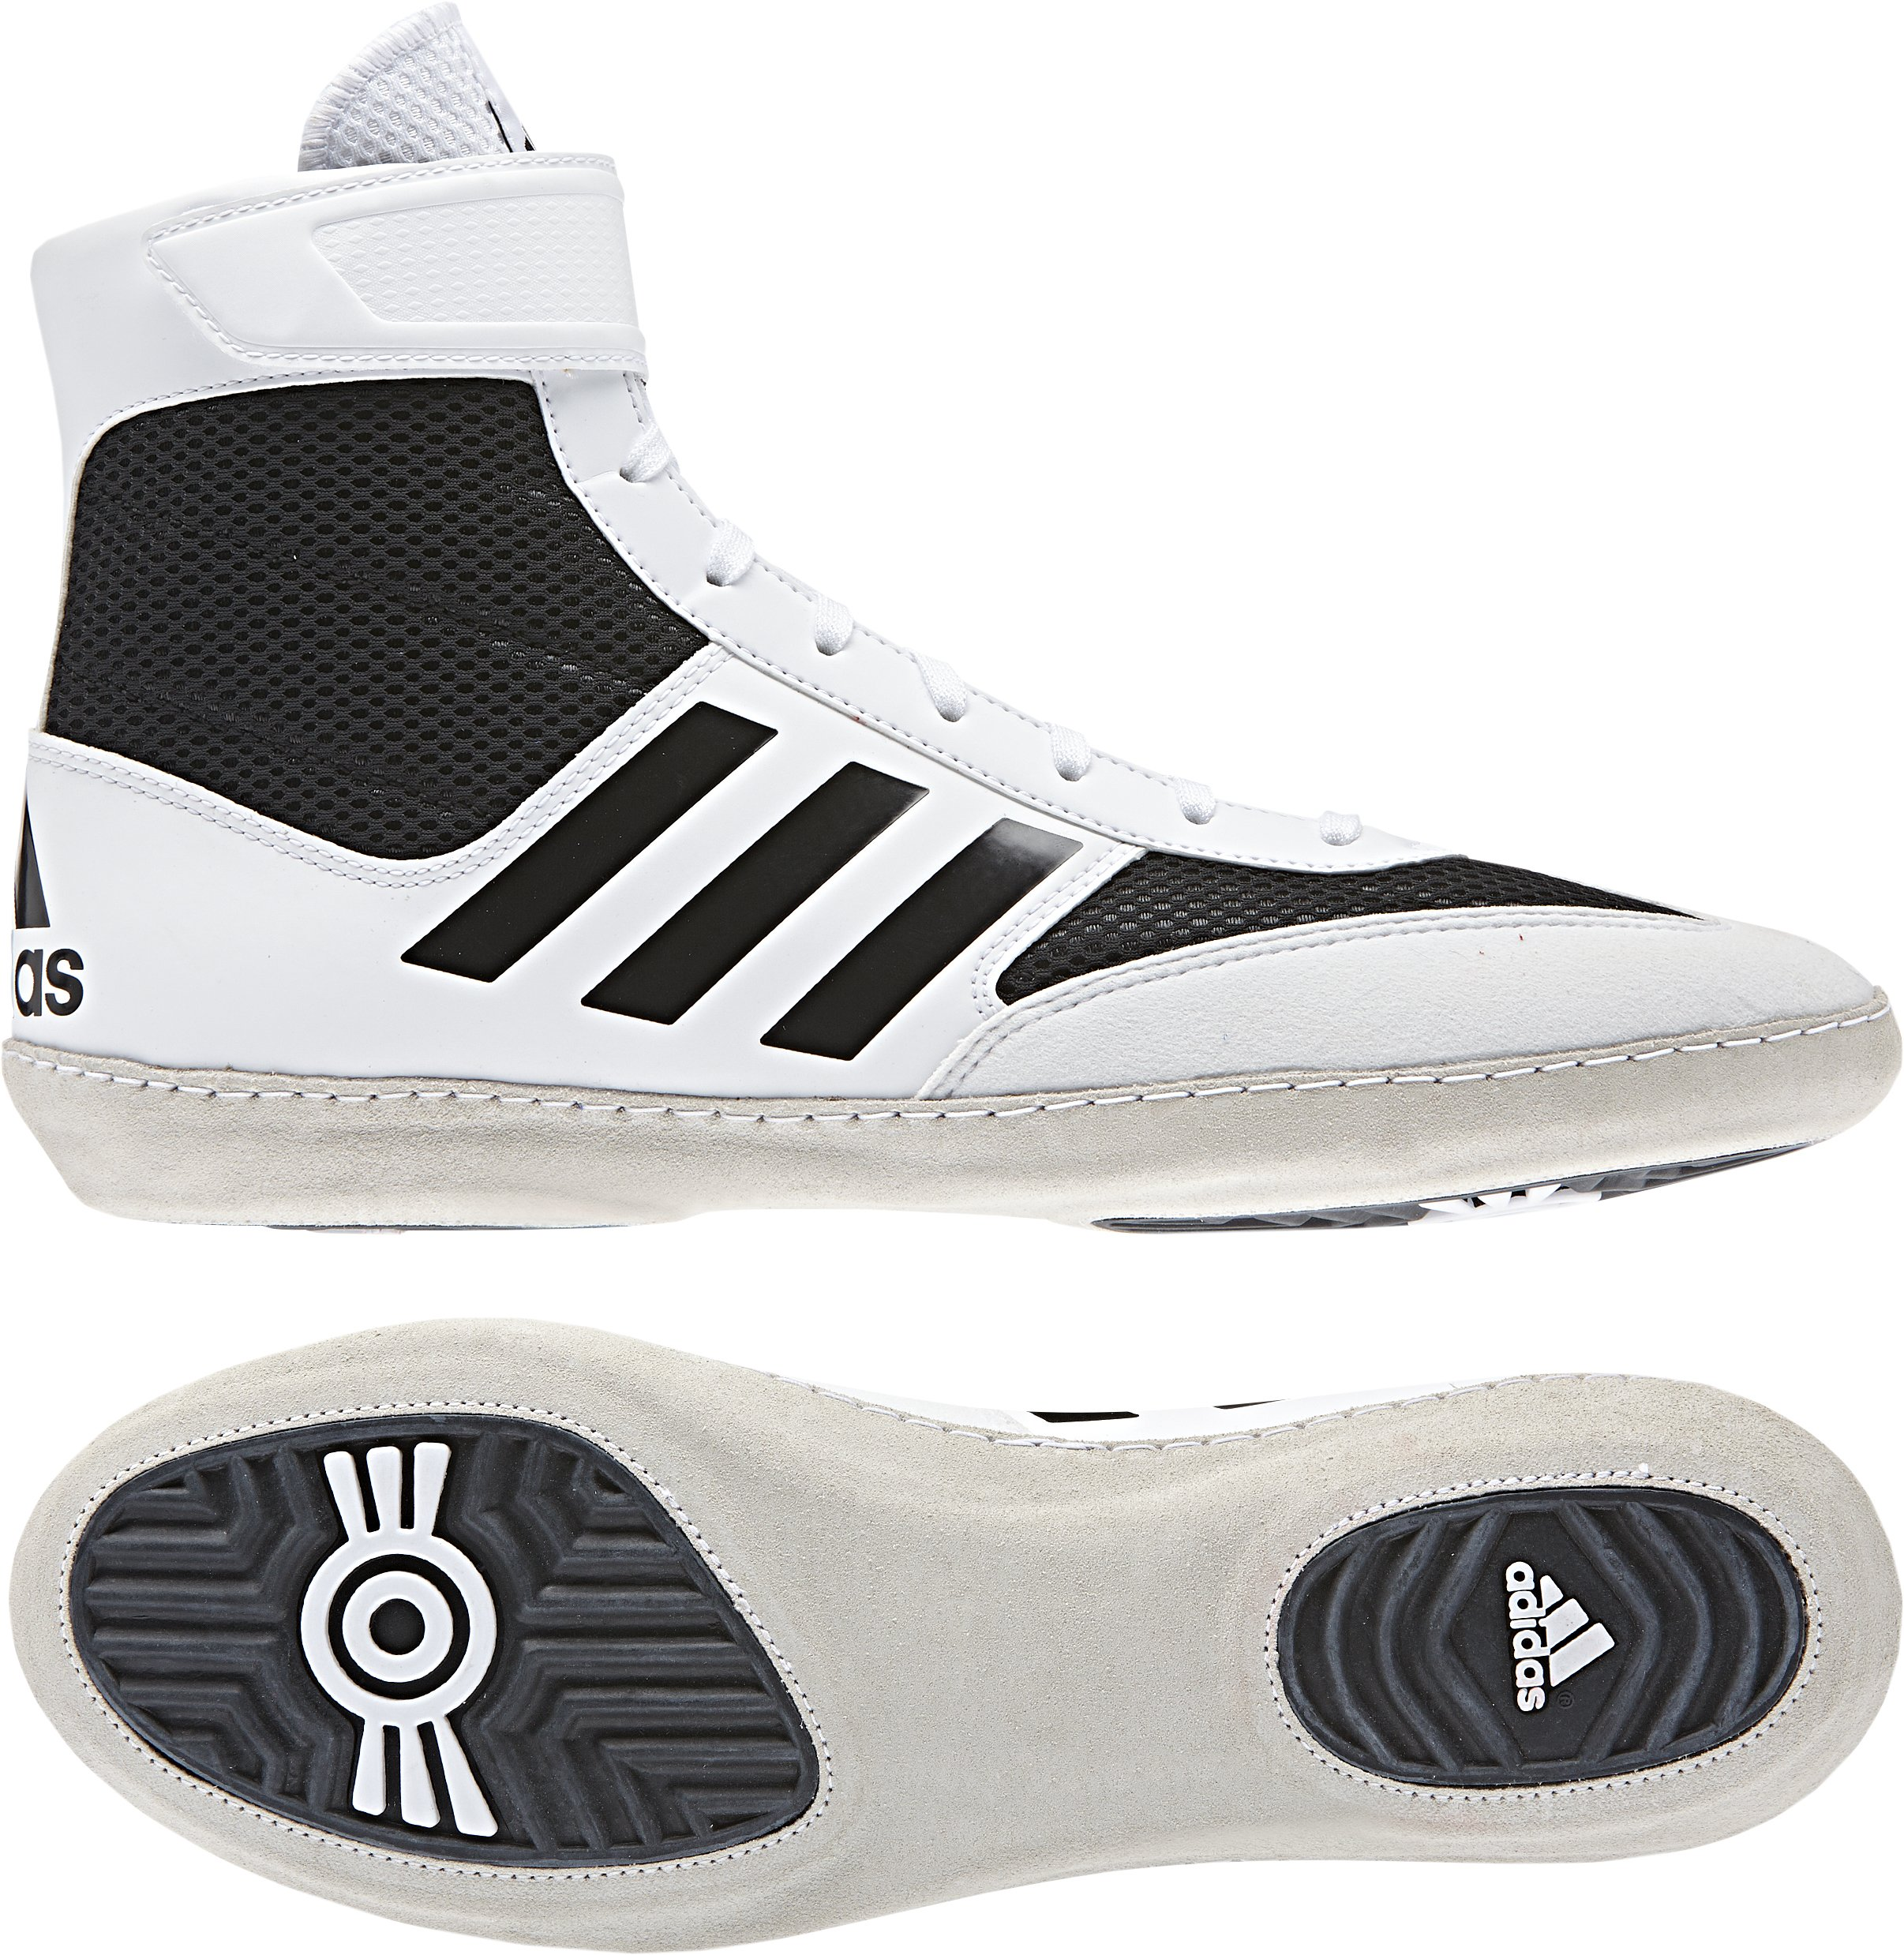 new concept 5b68a 2247e Galleon - Adidas Combat Speed 5 Men s Wrestling Shoes, White Black, Size 6.5